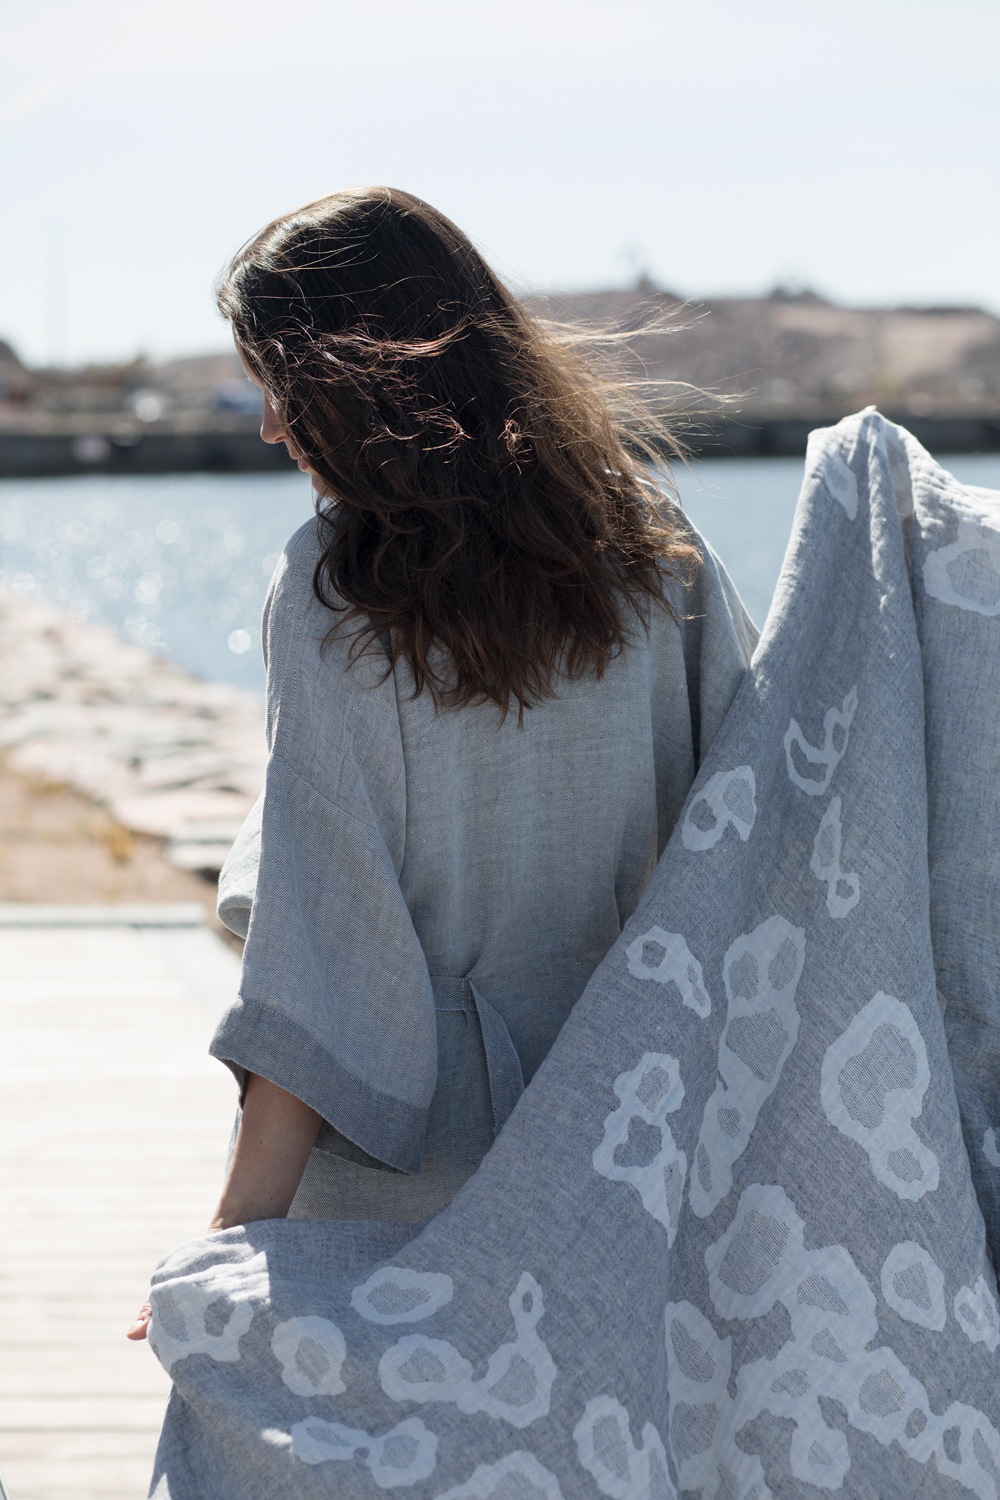 lapuankankurit_kaste_bathrobe_grey_and_saimaannorppa_towel_white-grey